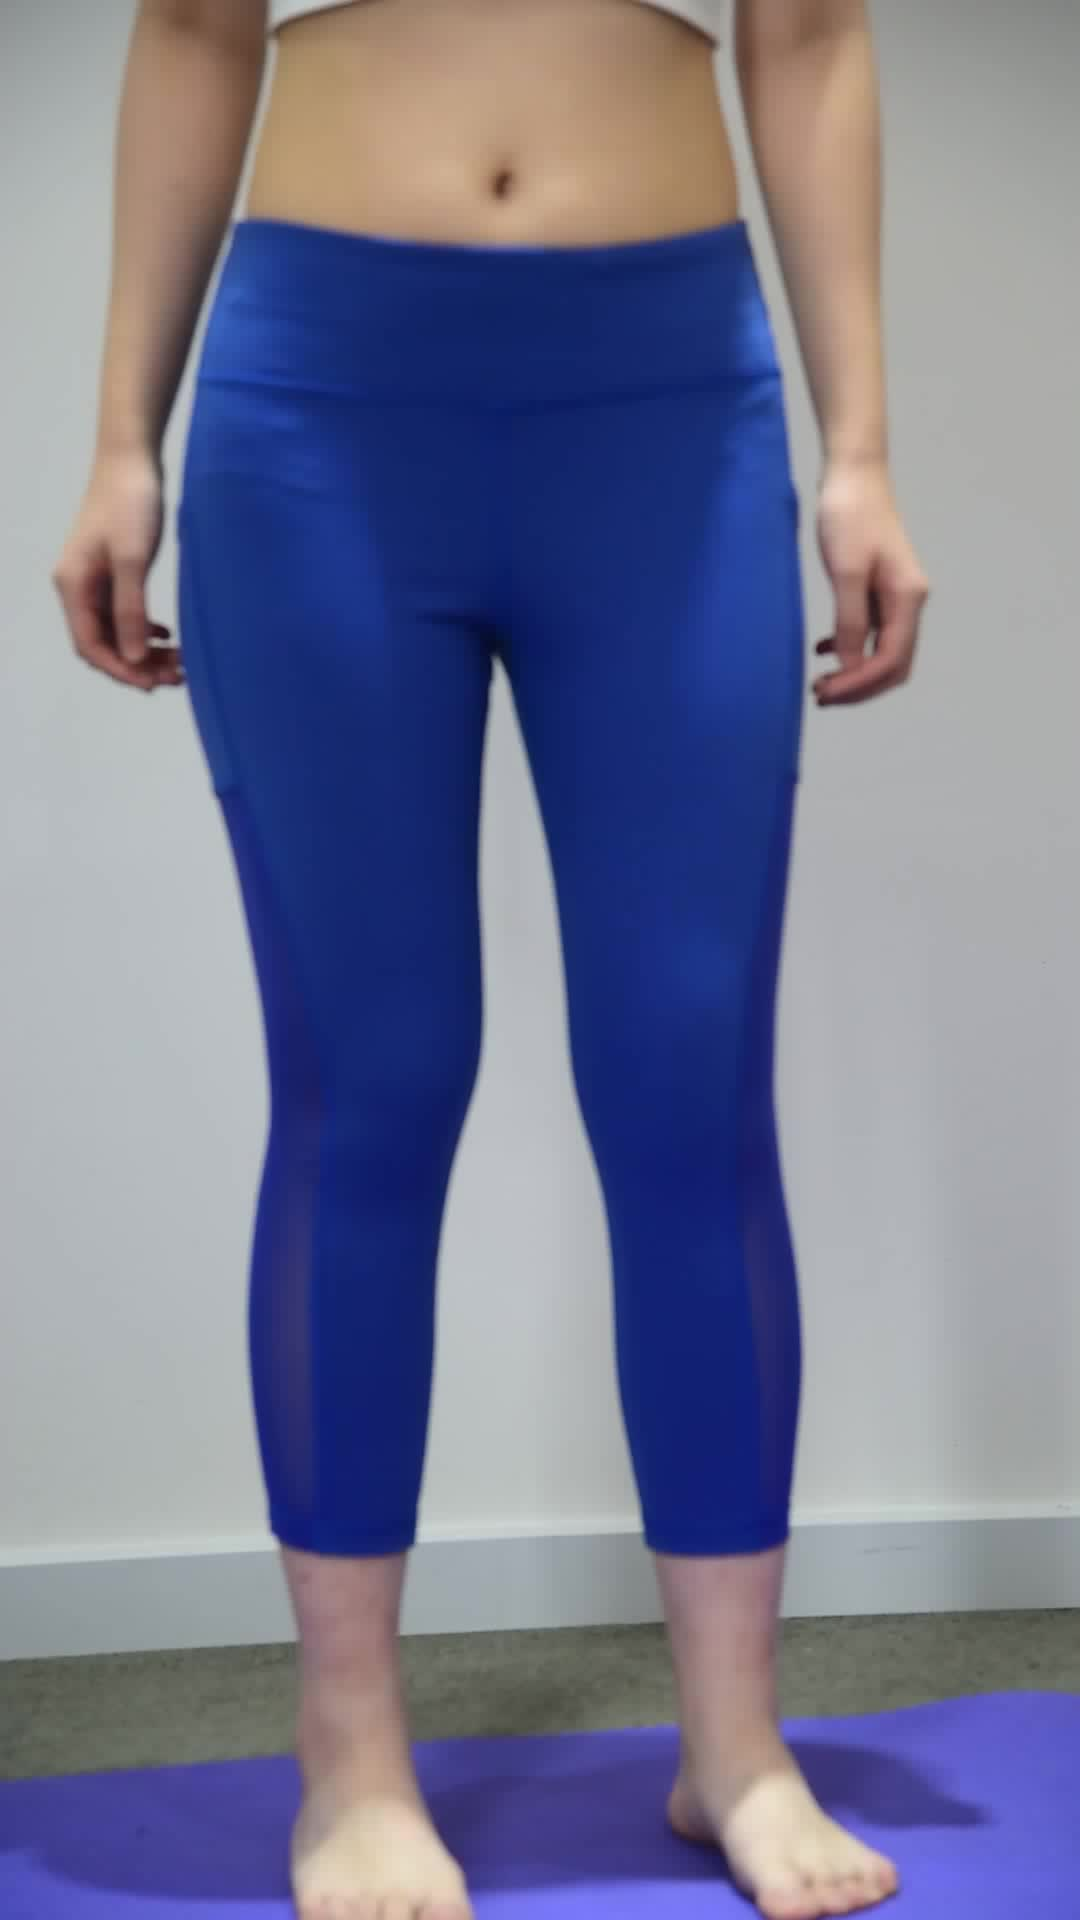 Hot Selling Fitness  Workout Activewear Sport High Waist Women Active Printing Tights Leggings